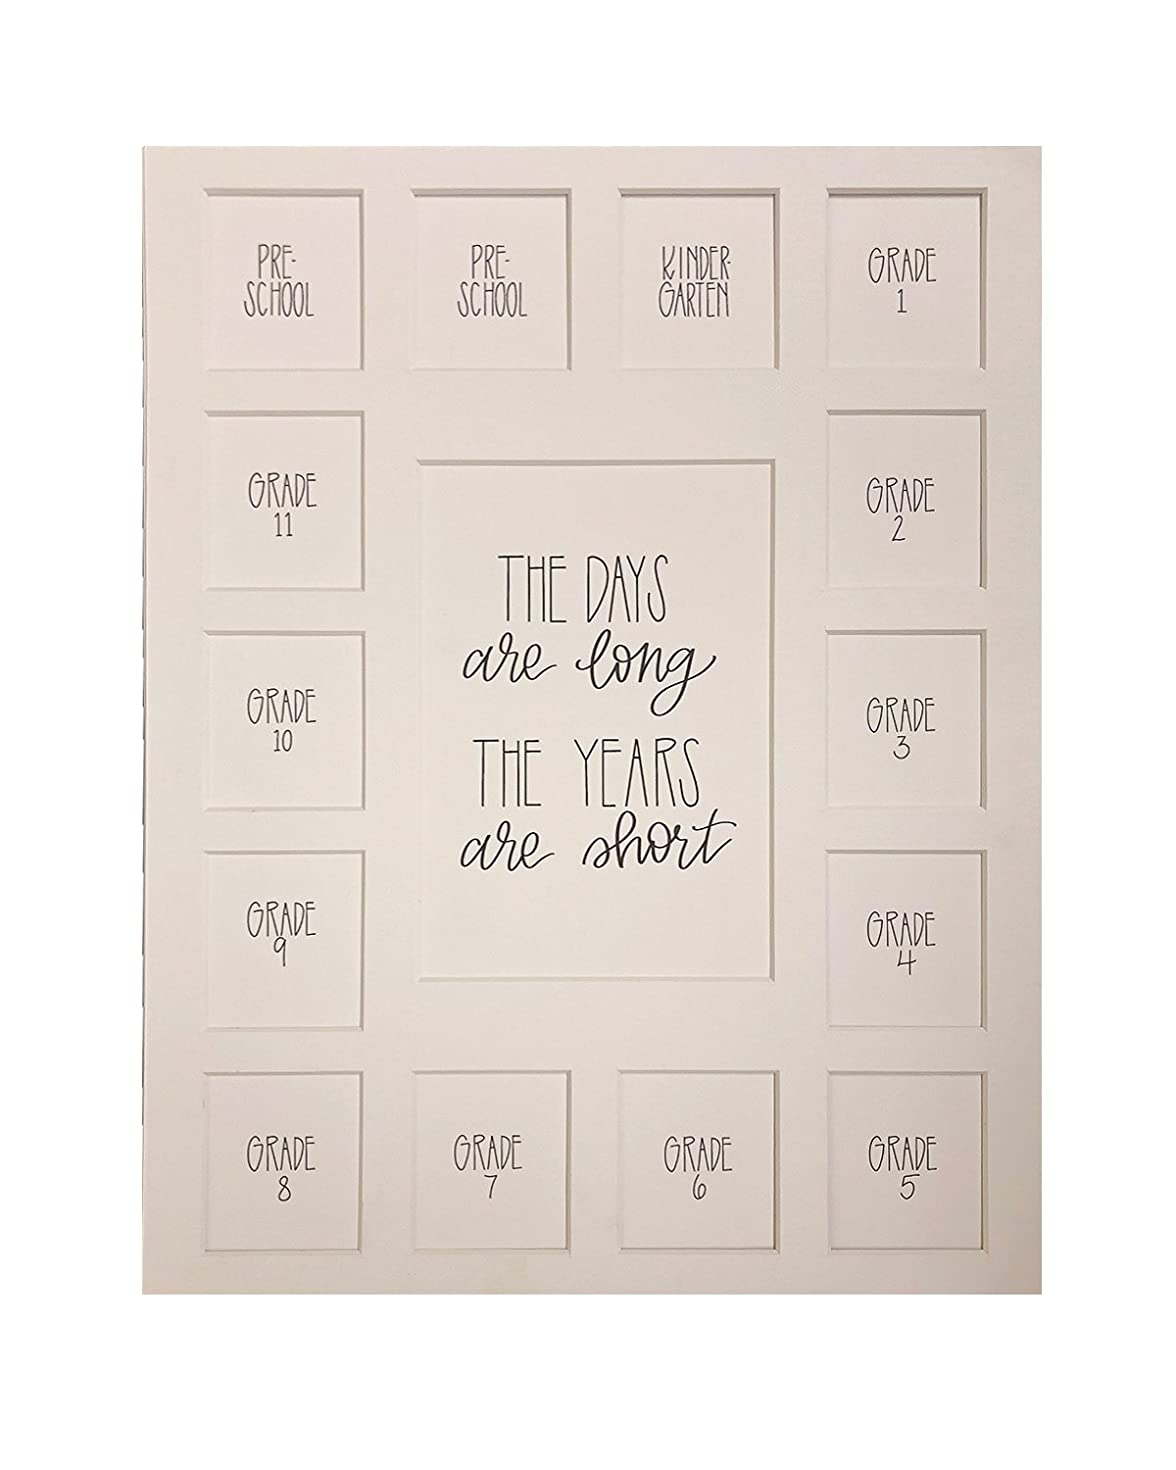 All Things For Mom School Picture Mat 11x14 The Days are Long, The Years are Short on a White Mat, Pre-School-12, 15 Openings, Mat Only